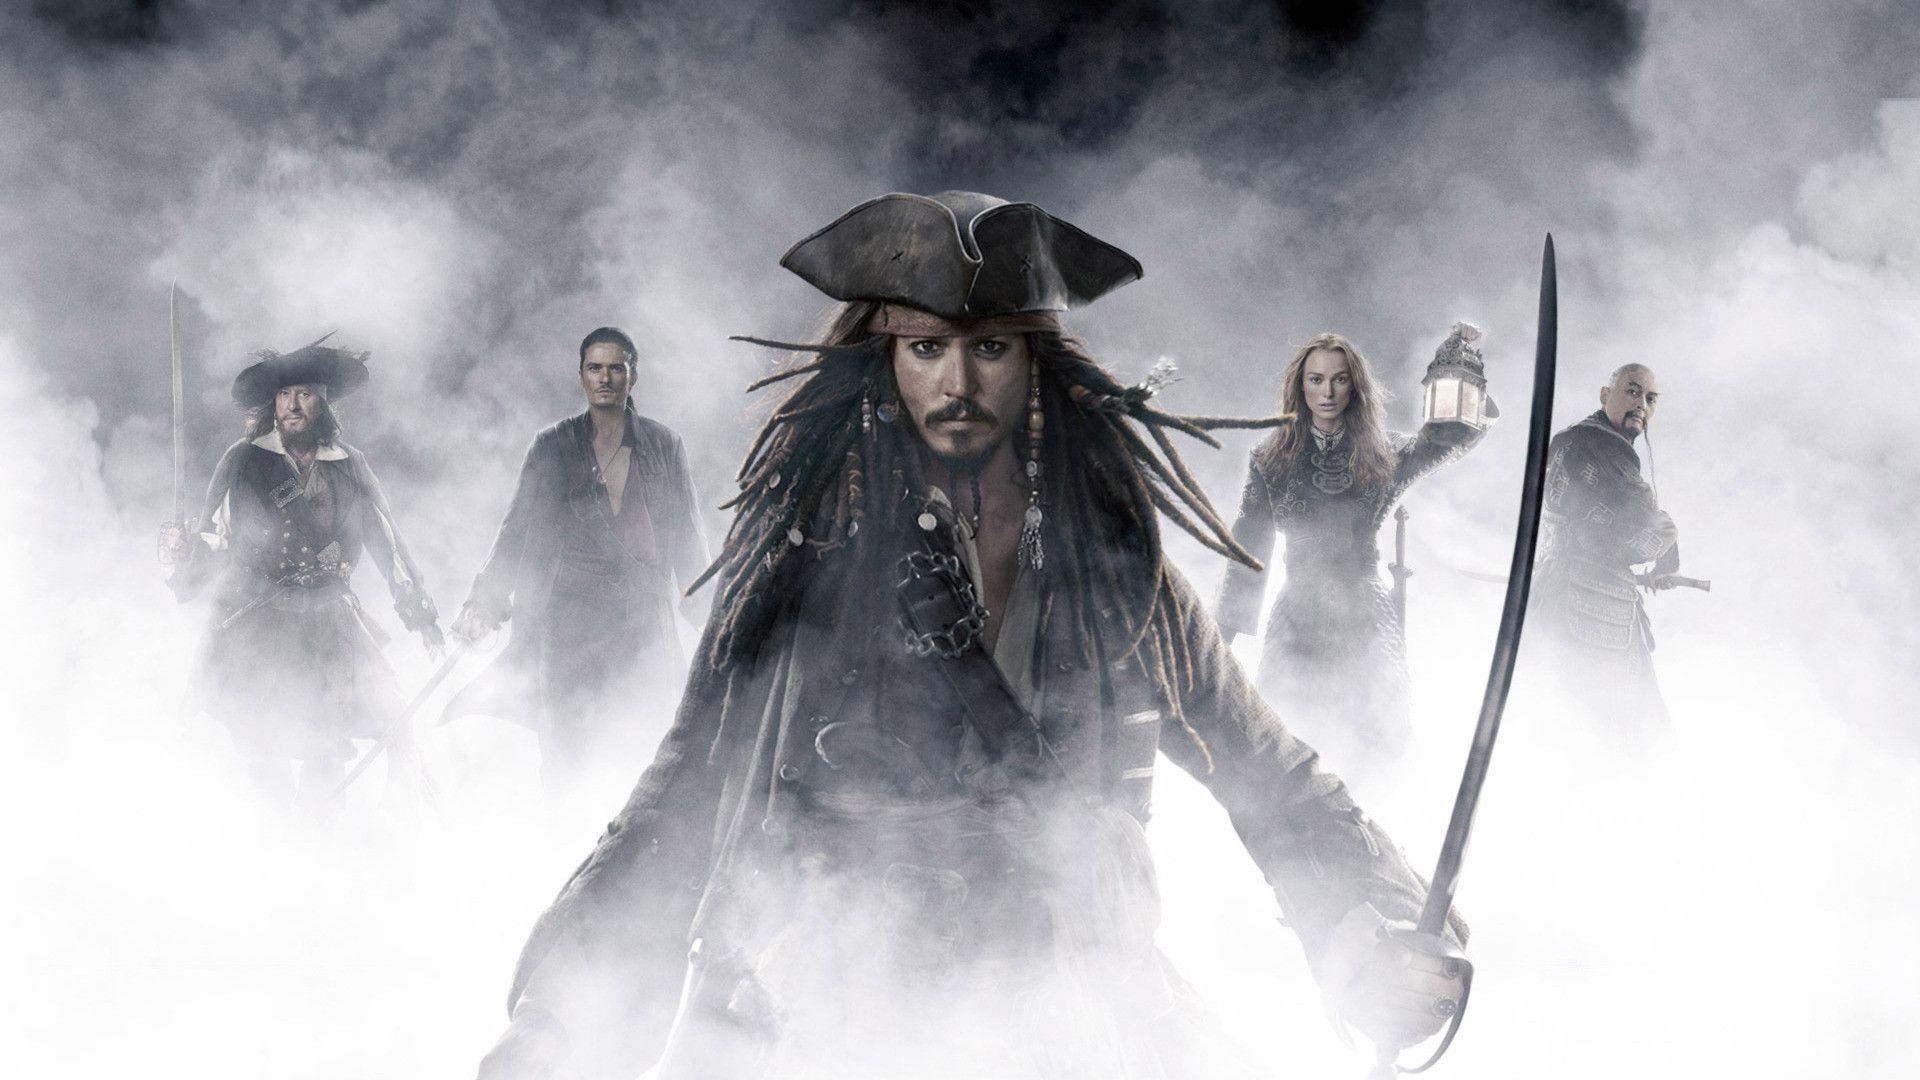 Pirates Of The Caribbean Movie Wallpapers | HD Wallpapers